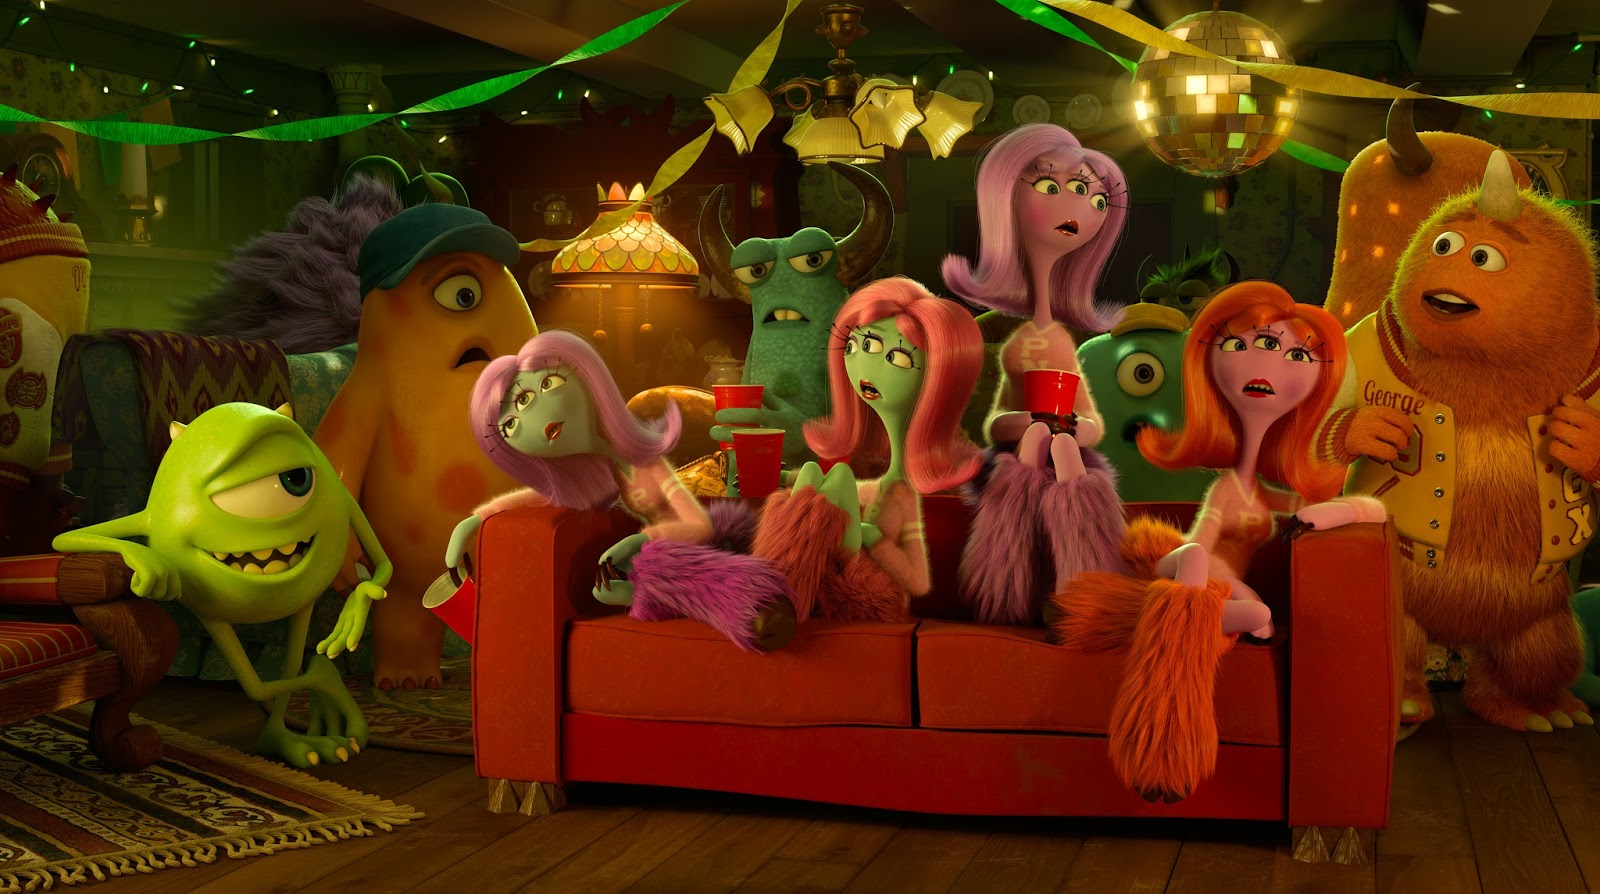 Join a monster of a party with the Disney Movies Anywhere premiere of PARTY CENTRAL. The Disney•Pixar short is now available to view for free for the first time, and reunites everyone's favorite monsters, Mike and Sulley, for another hilarious adventure.